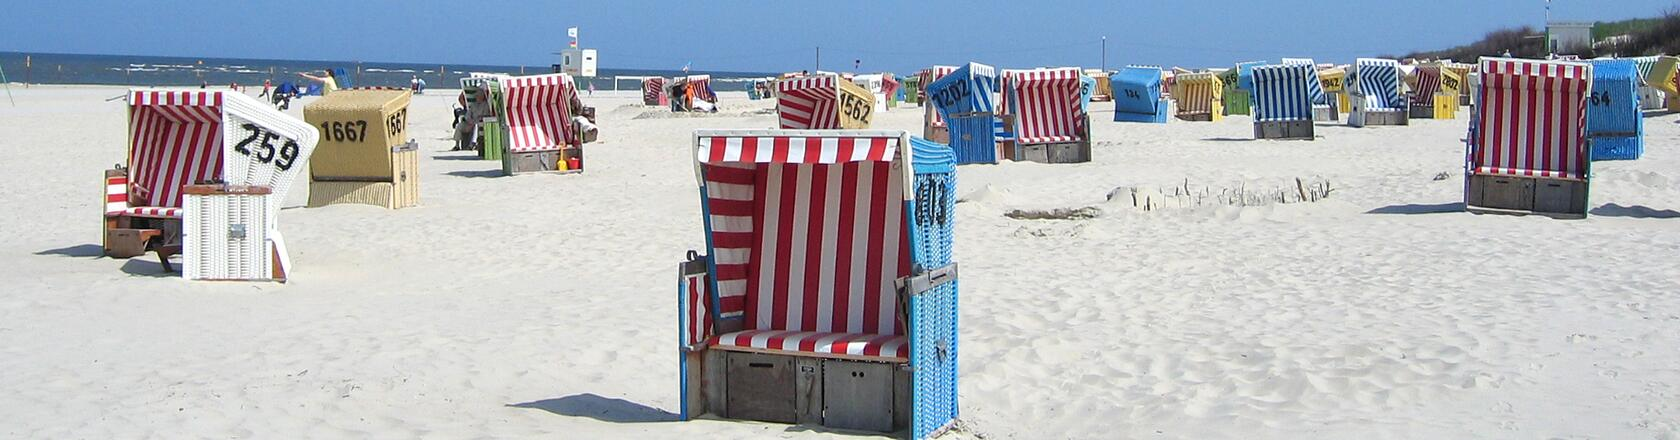 Überlingen in Germany - Rent a holiday home  with DanCenter